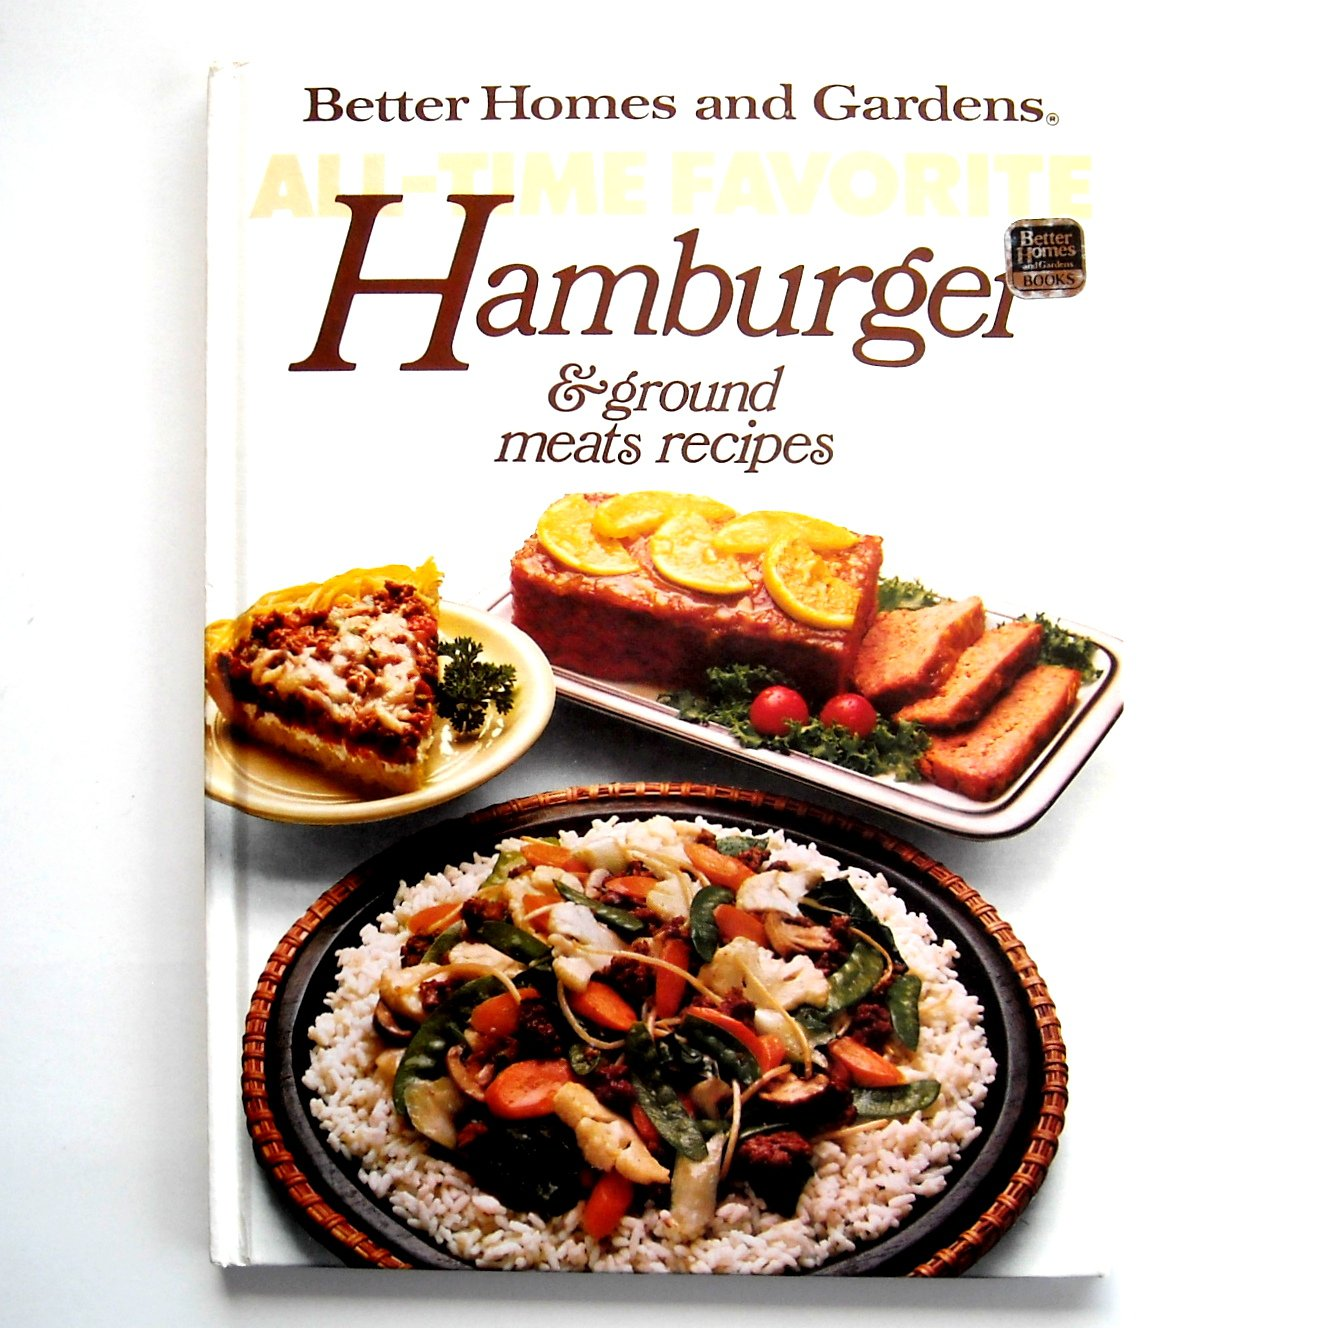 Hamburger ground meats recipes better homes and gardens book for Home and garden recipes